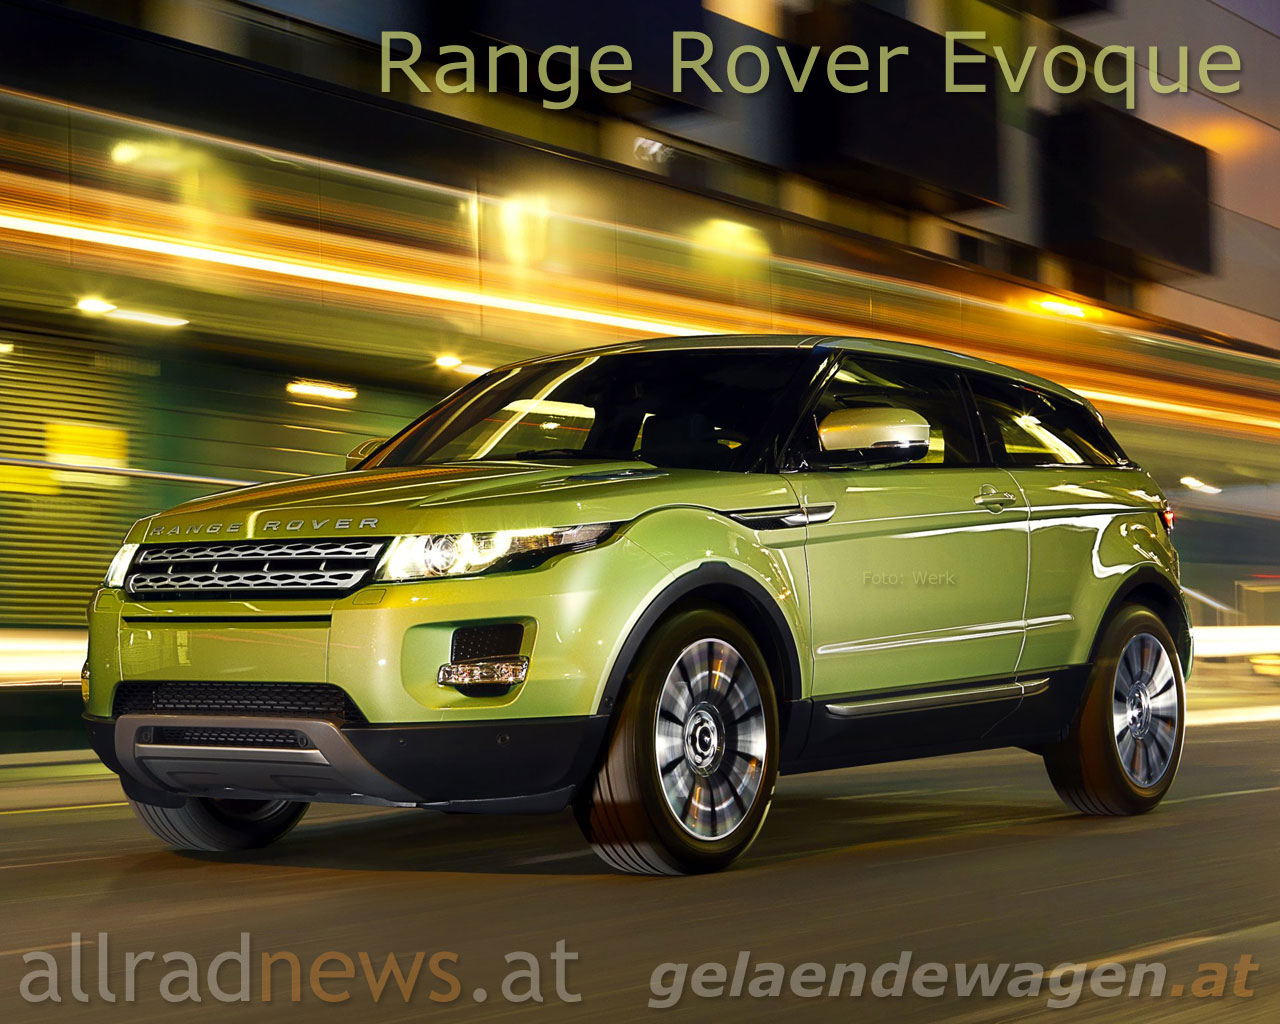 vorstellung der range rover evoque kommt im september. Black Bedroom Furniture Sets. Home Design Ideas